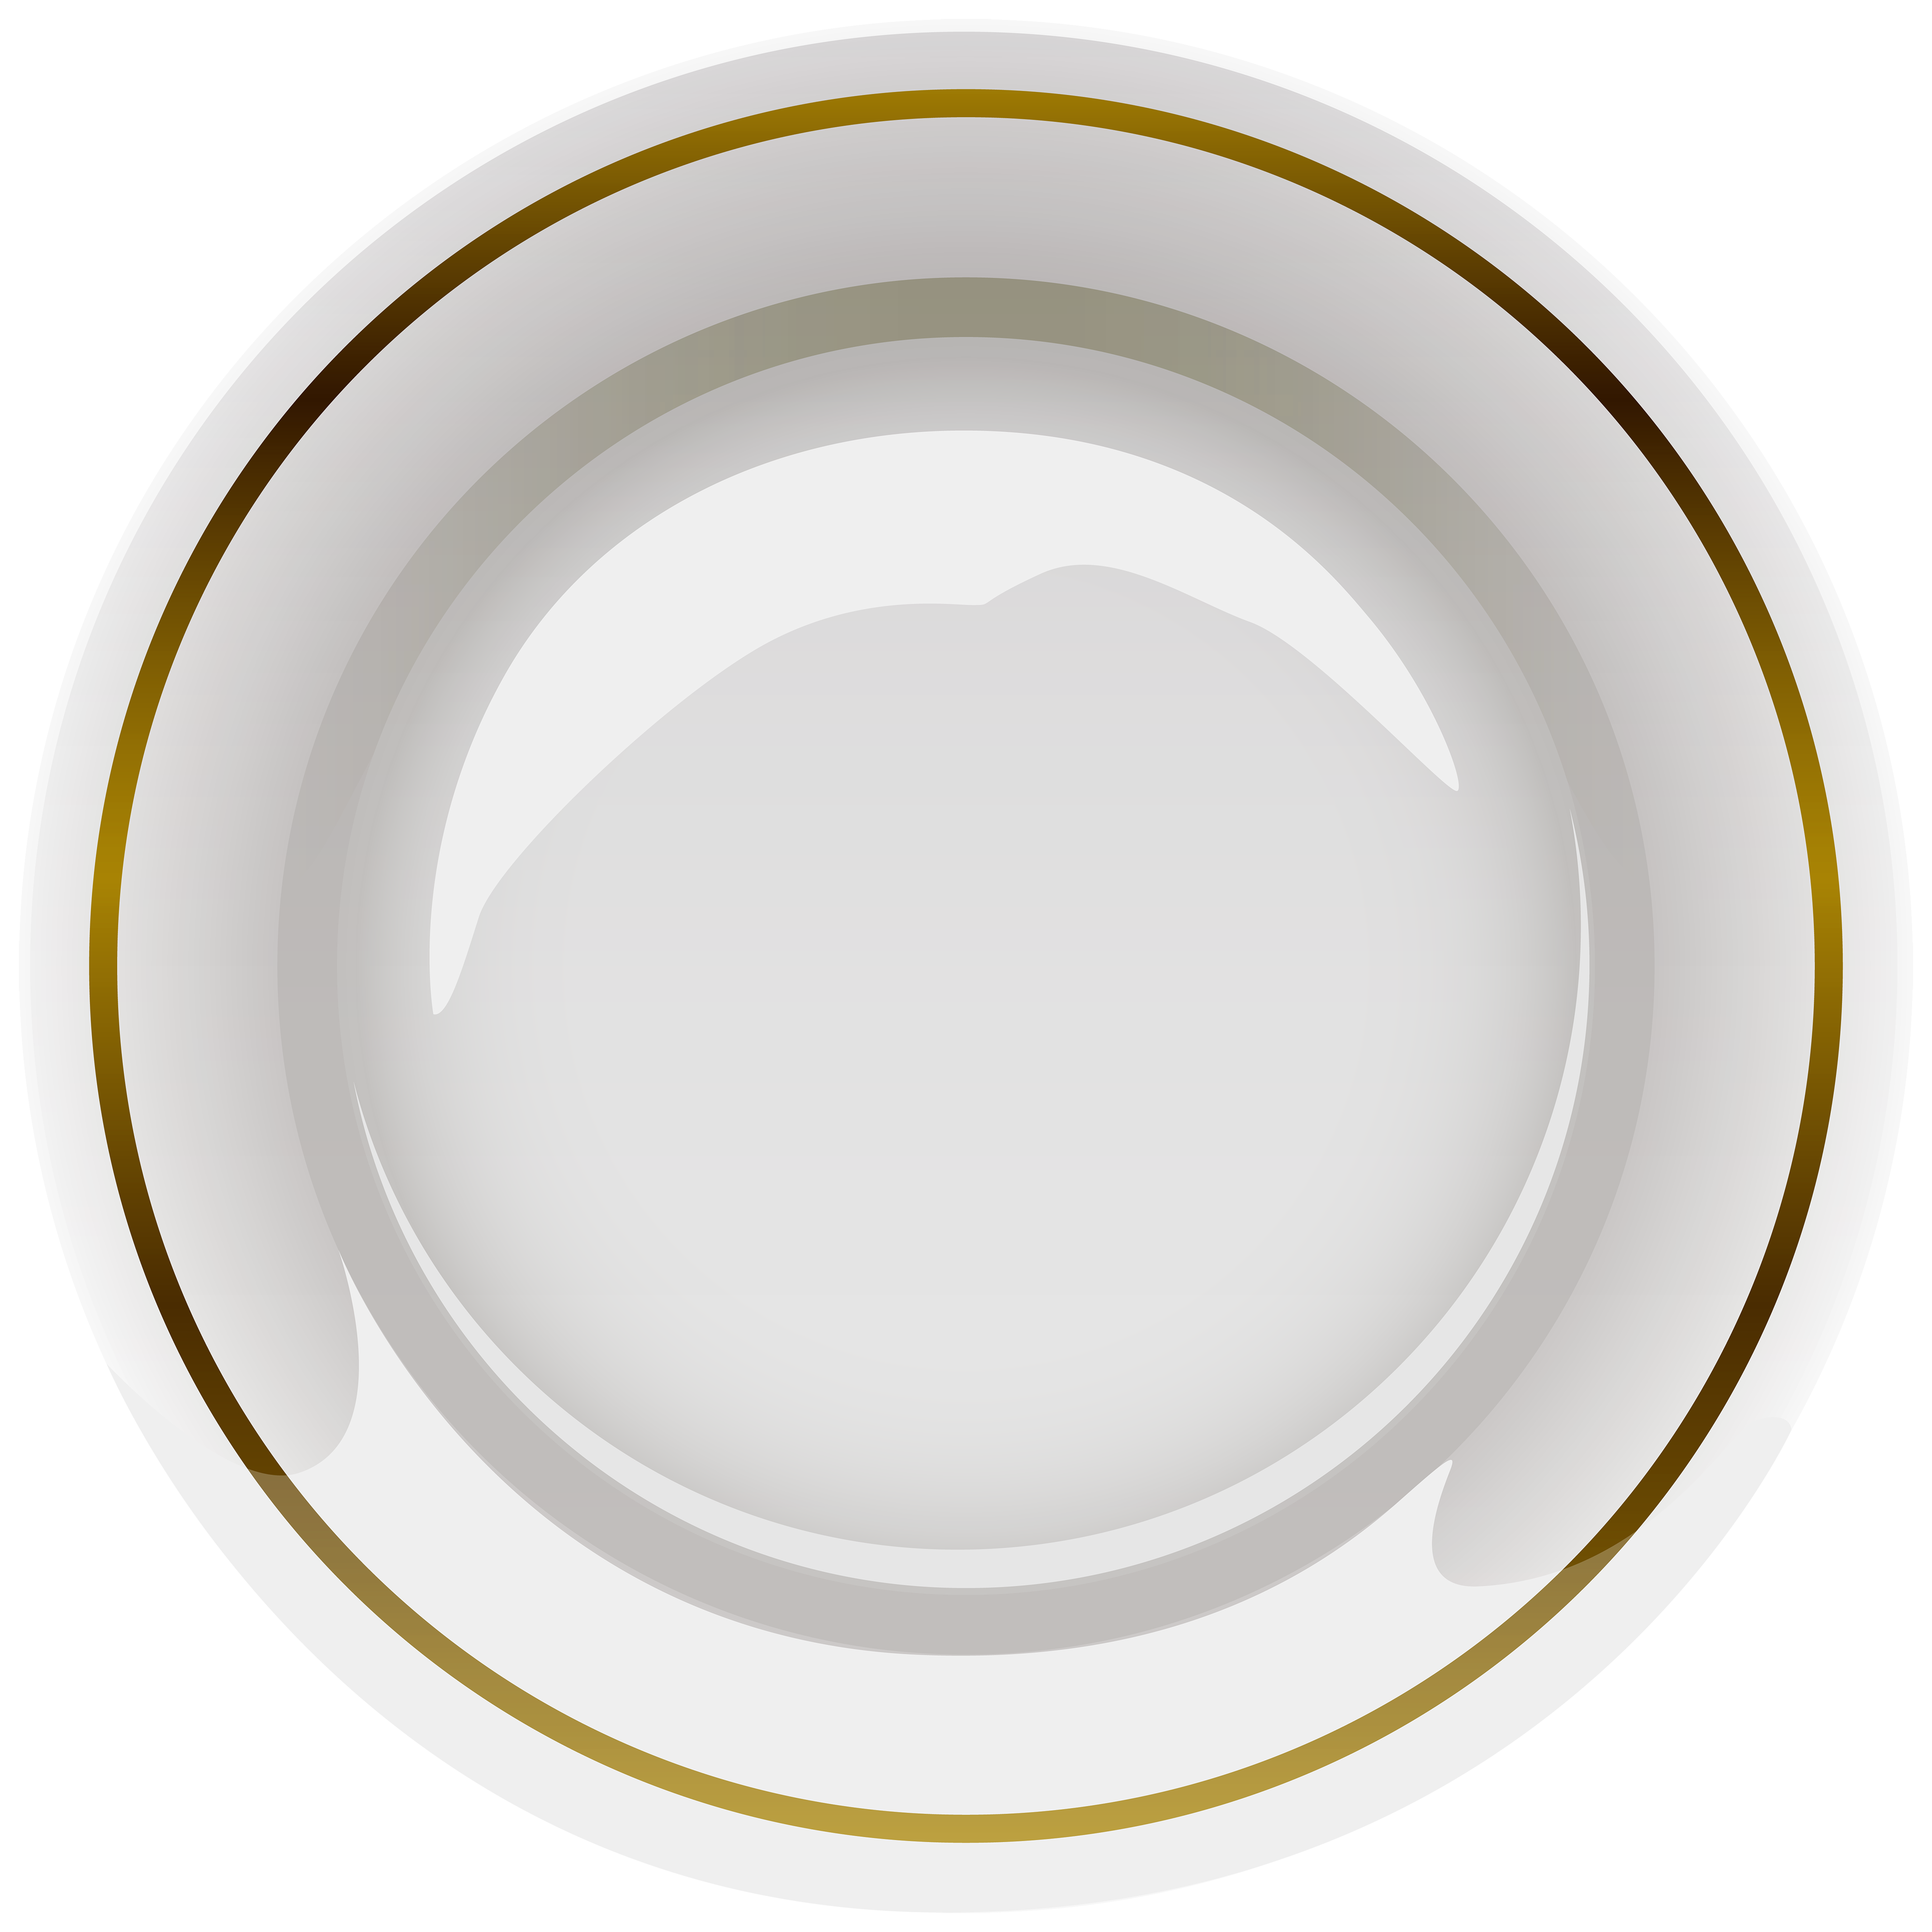 plate clipart clean plate